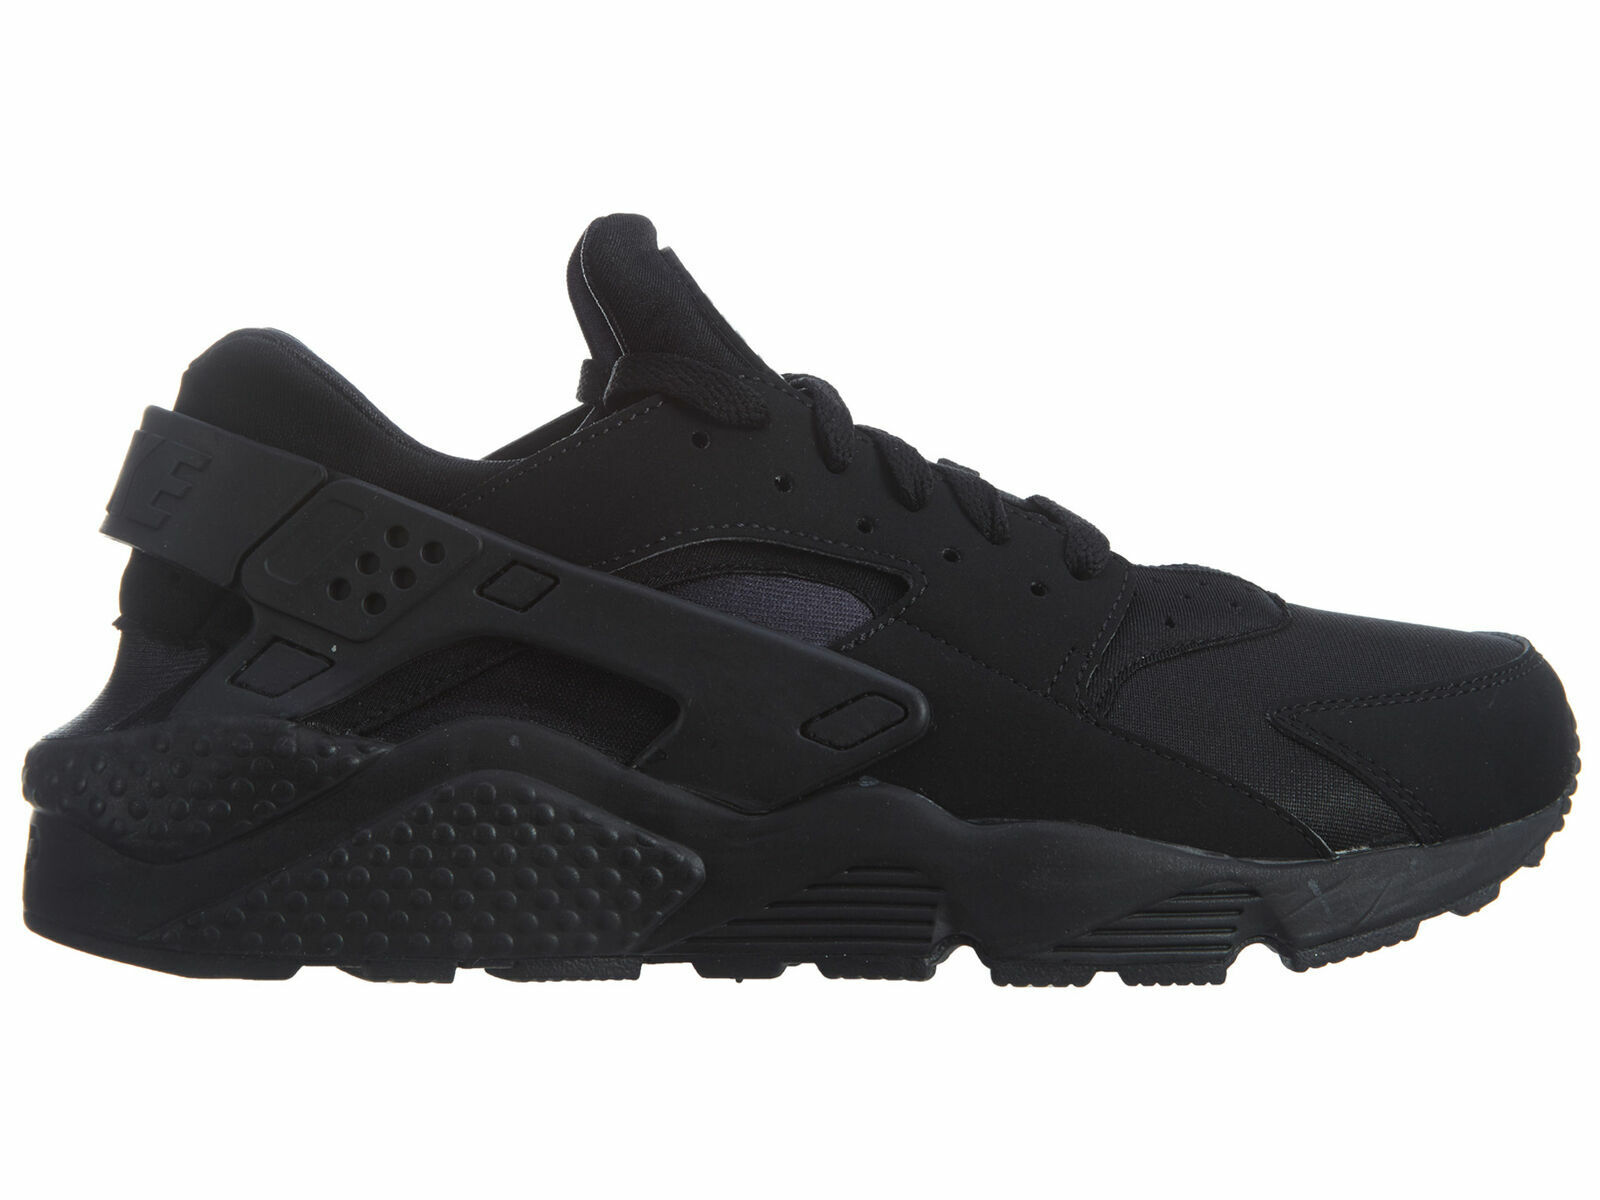 Nike Air Huarache Men's Training Shoes 318429 003 Black Gym Workout New In  Box